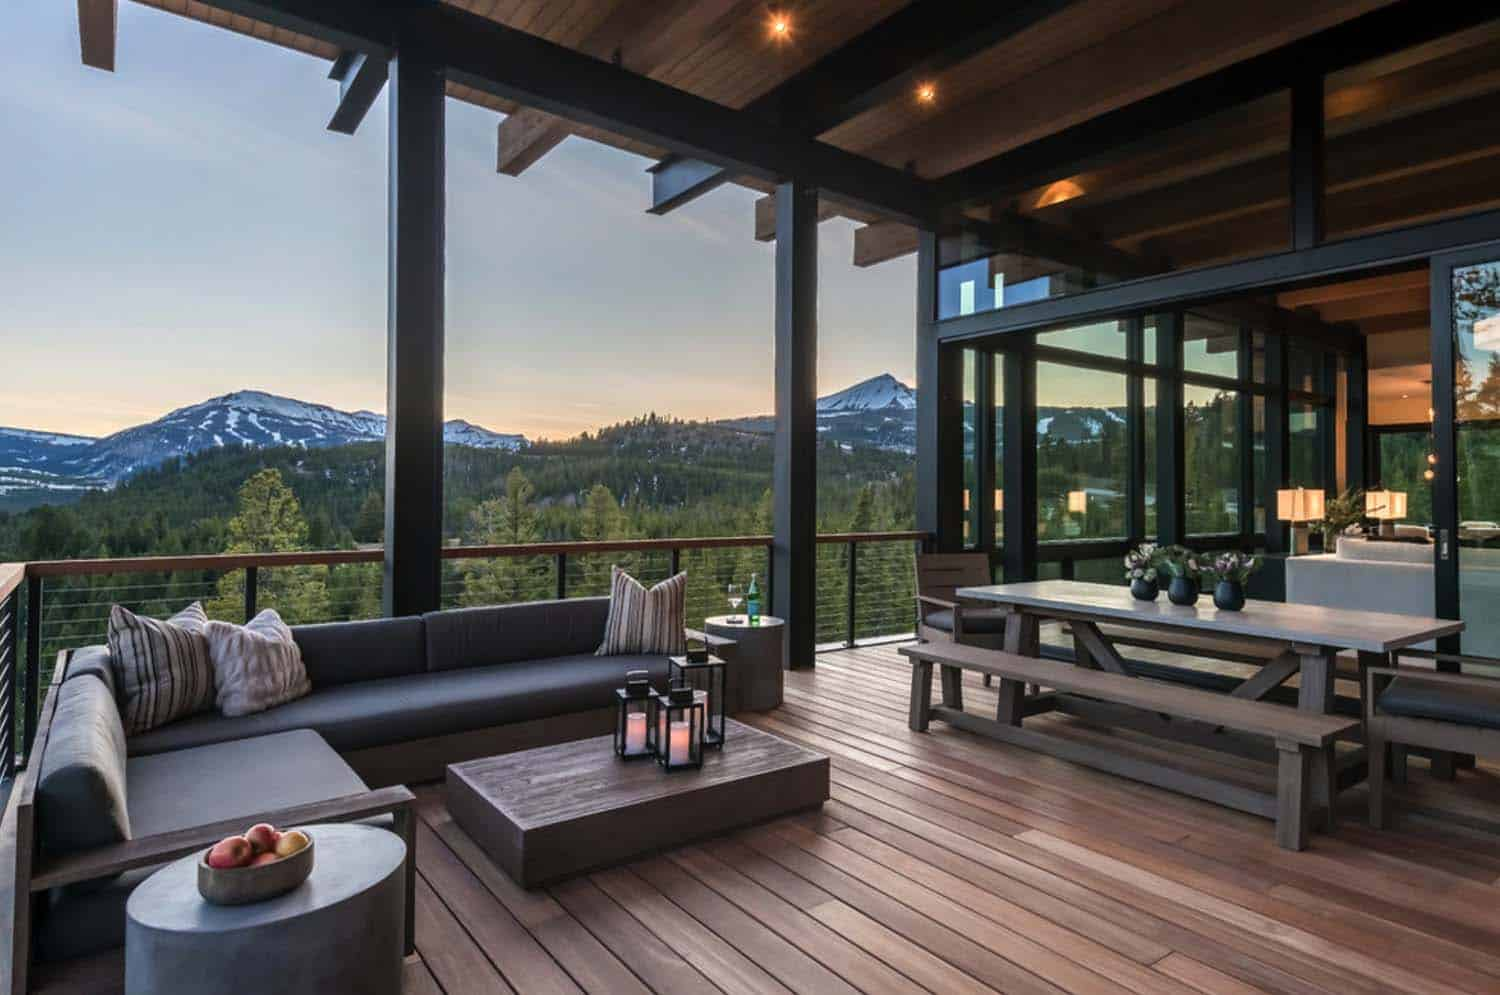 Mountain Modern Home-Reid Smith Architects-01-1 Kindesign